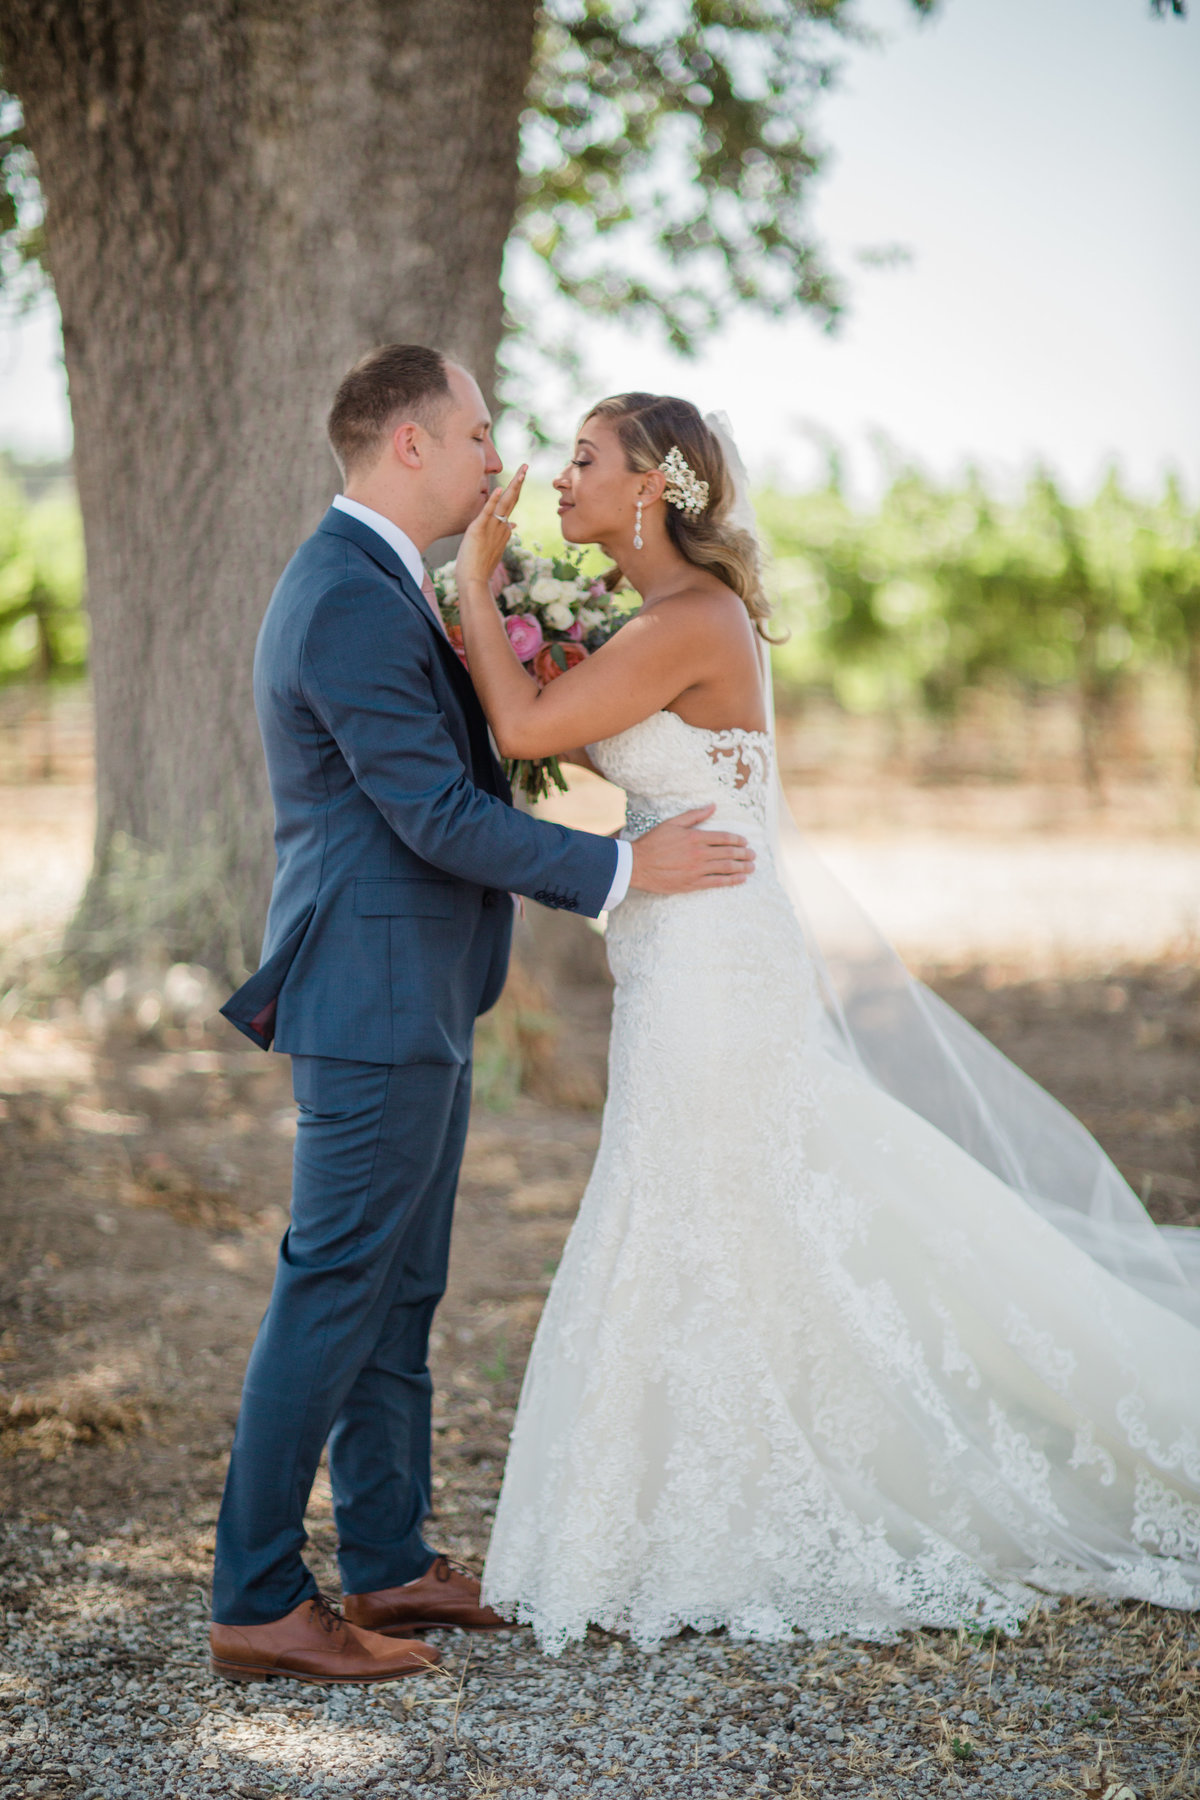 Jenna & Andrew's Oyster Ridge Wedding | Paso Robles Wedding Photographer | Katie Schoepflin Photography438